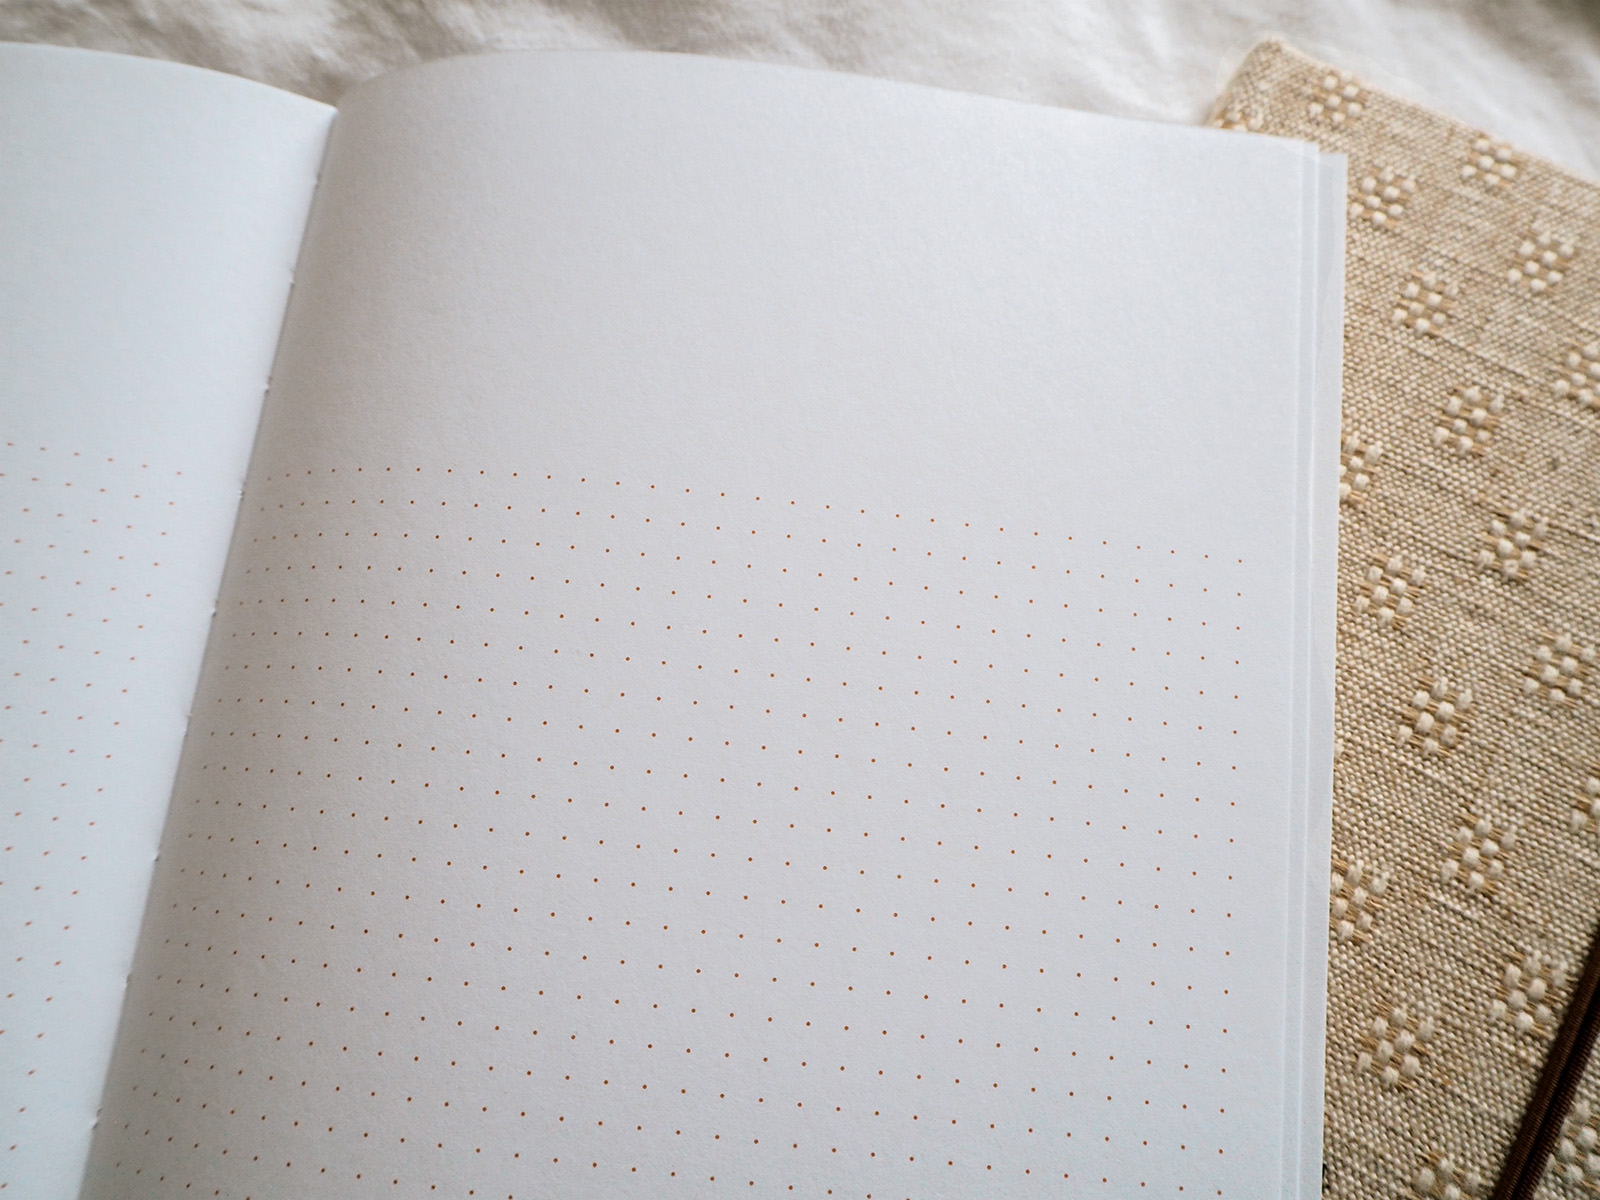 Dotted Notebook Pages